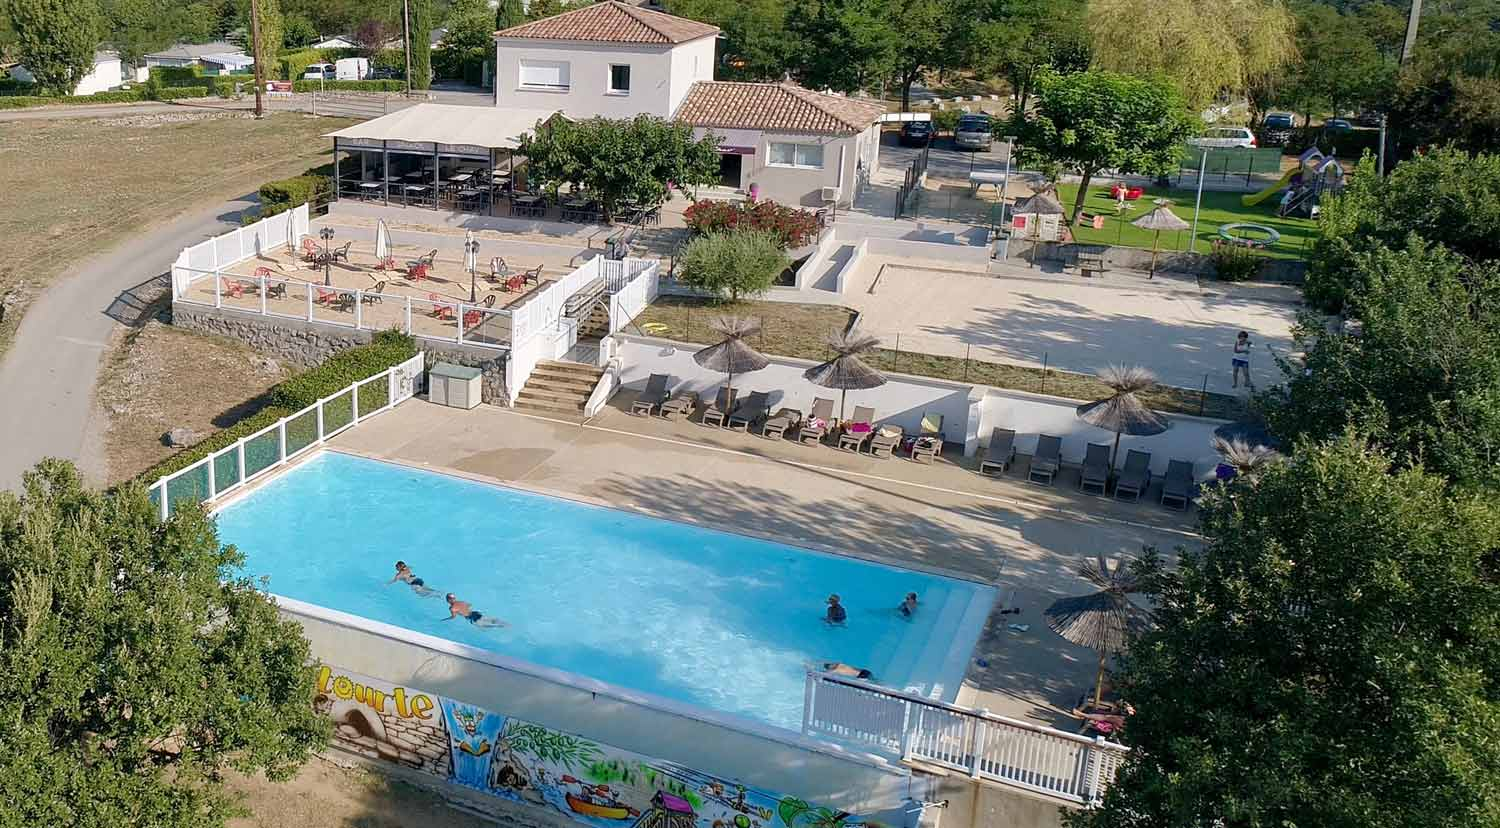 Camping piscine chauffee ardeche photos de voyage for Camping piscine